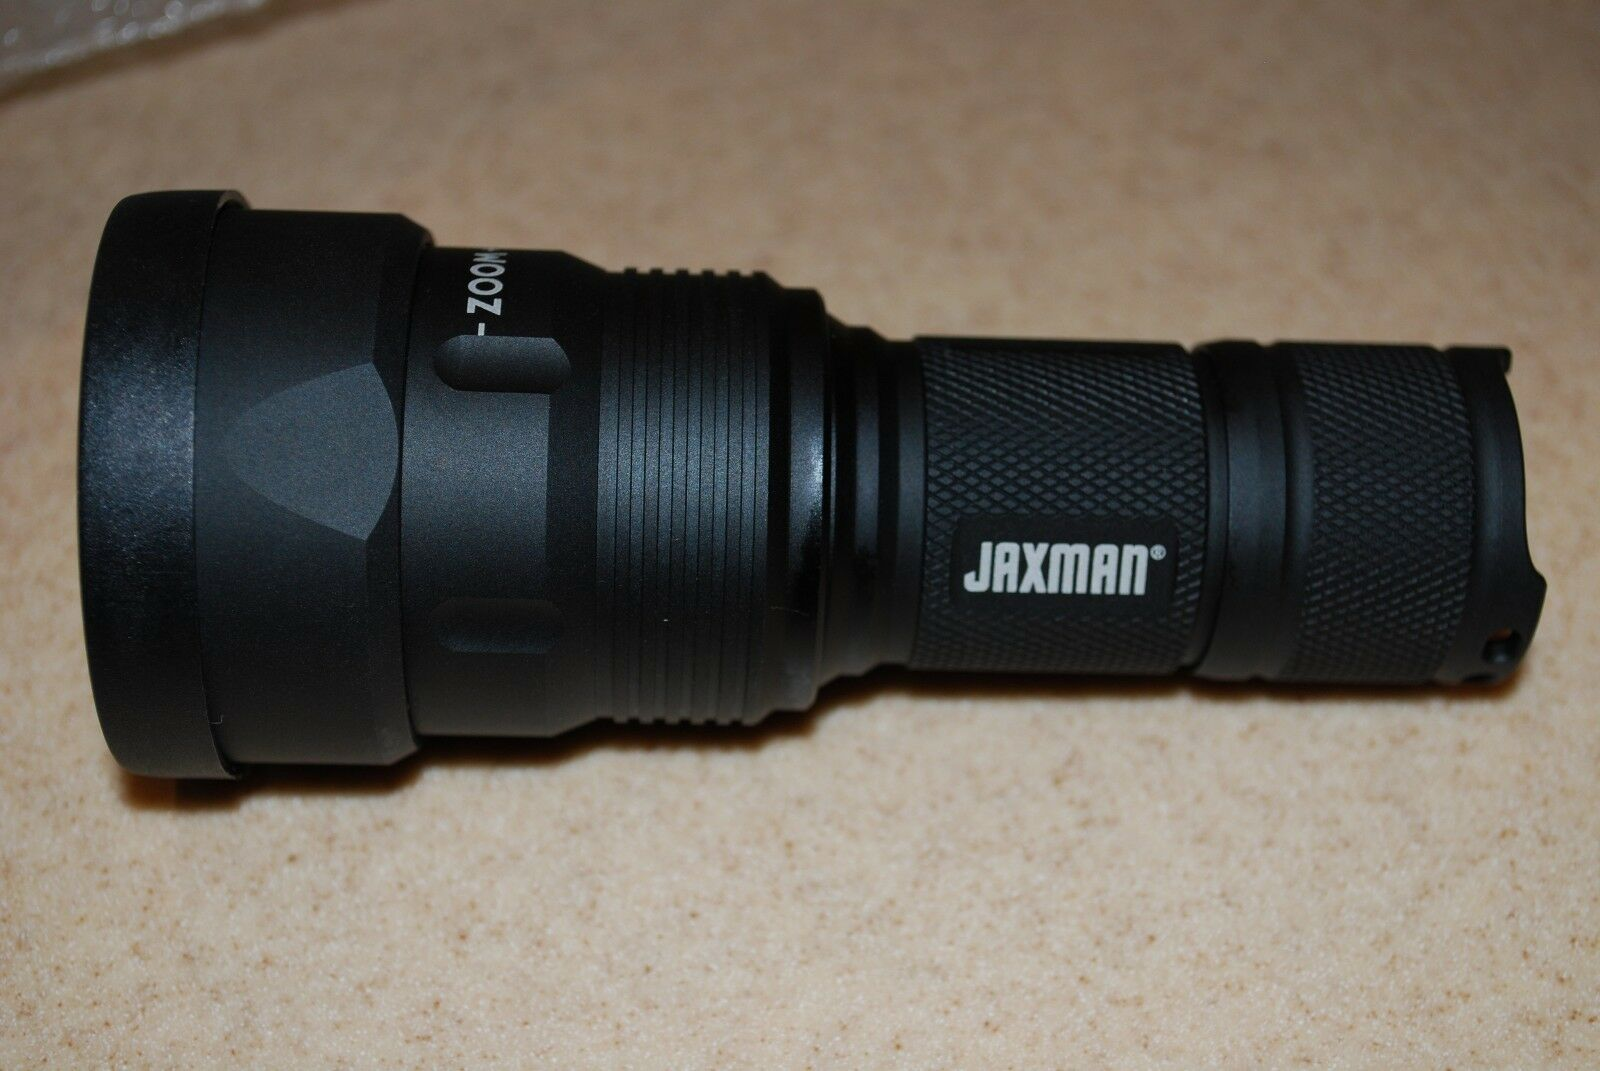 NIB JAXMAN Z1 Cree XM-L2  U2 Zoomable 1100lm 5 Modes Flashlight  preferential